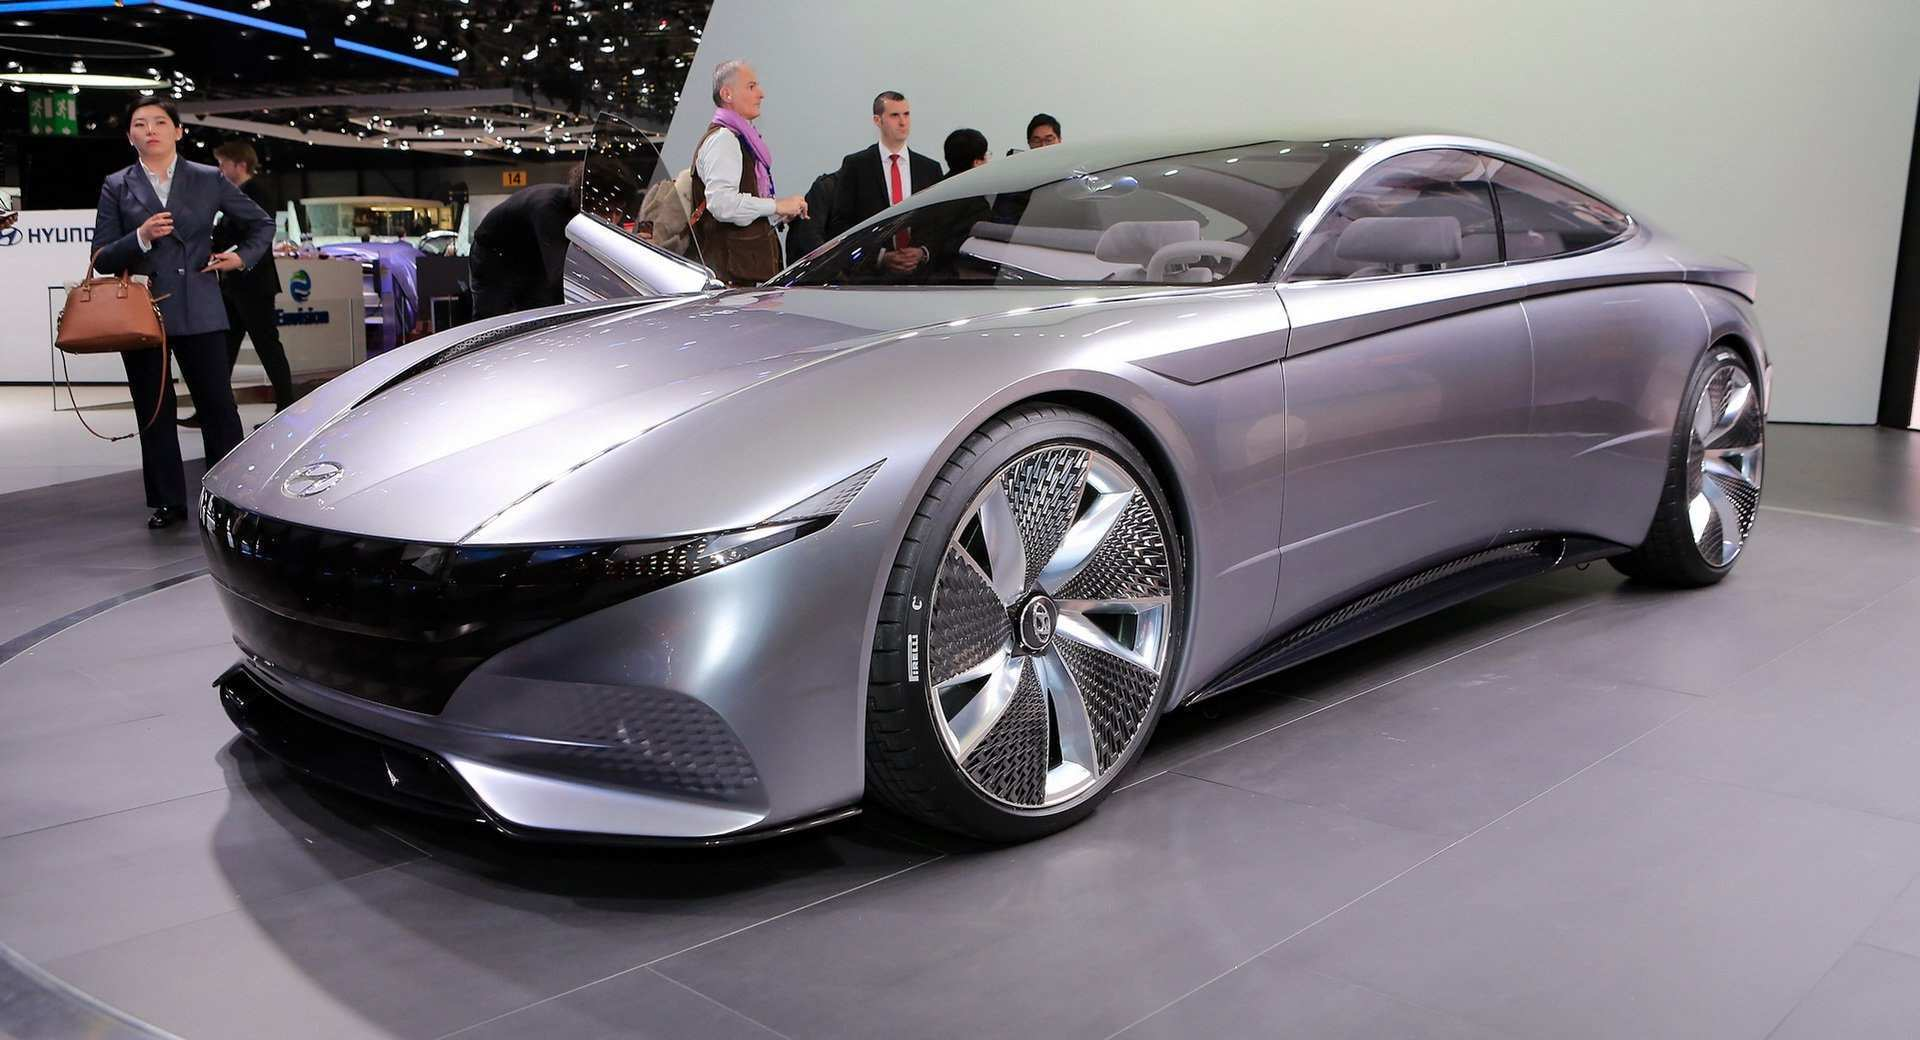 49 Gallery of Hyundai Concept 2020 Release Date for Hyundai Concept 2020